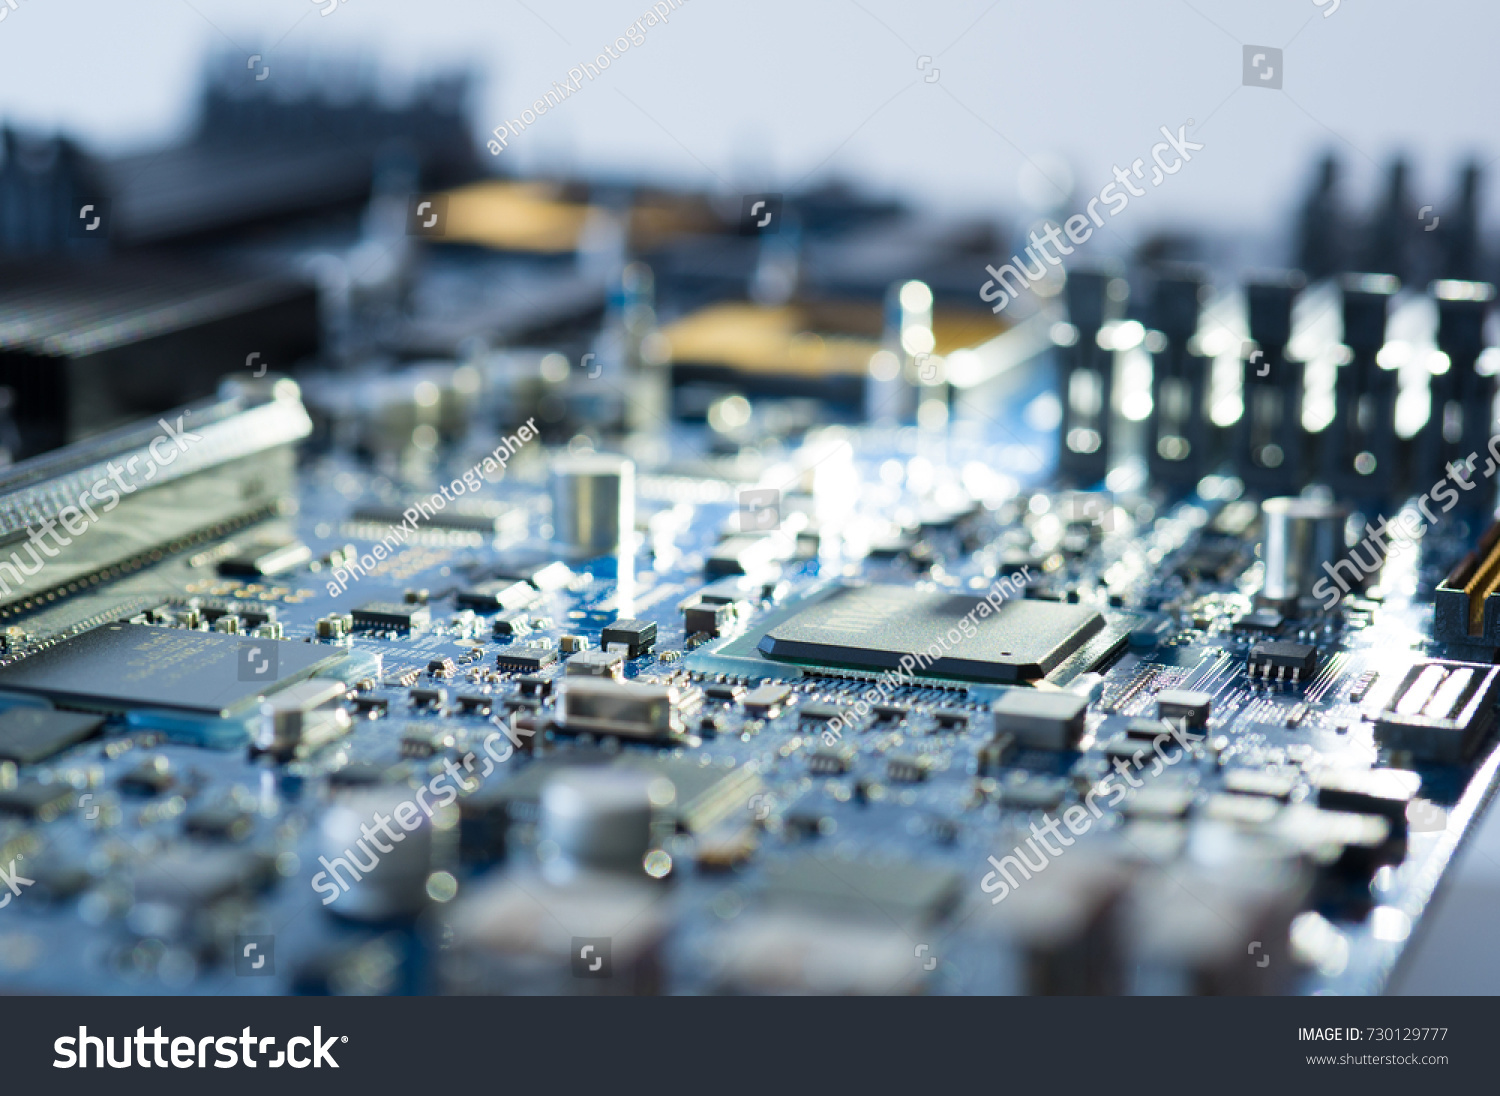 Hardware Design Electrical Pcb Service Support Stock Photo Edit Now Circuit Boards Fabrication And Low Cost Services Chip Upgrade Semiconductor Manufacturing Electronic Device Board